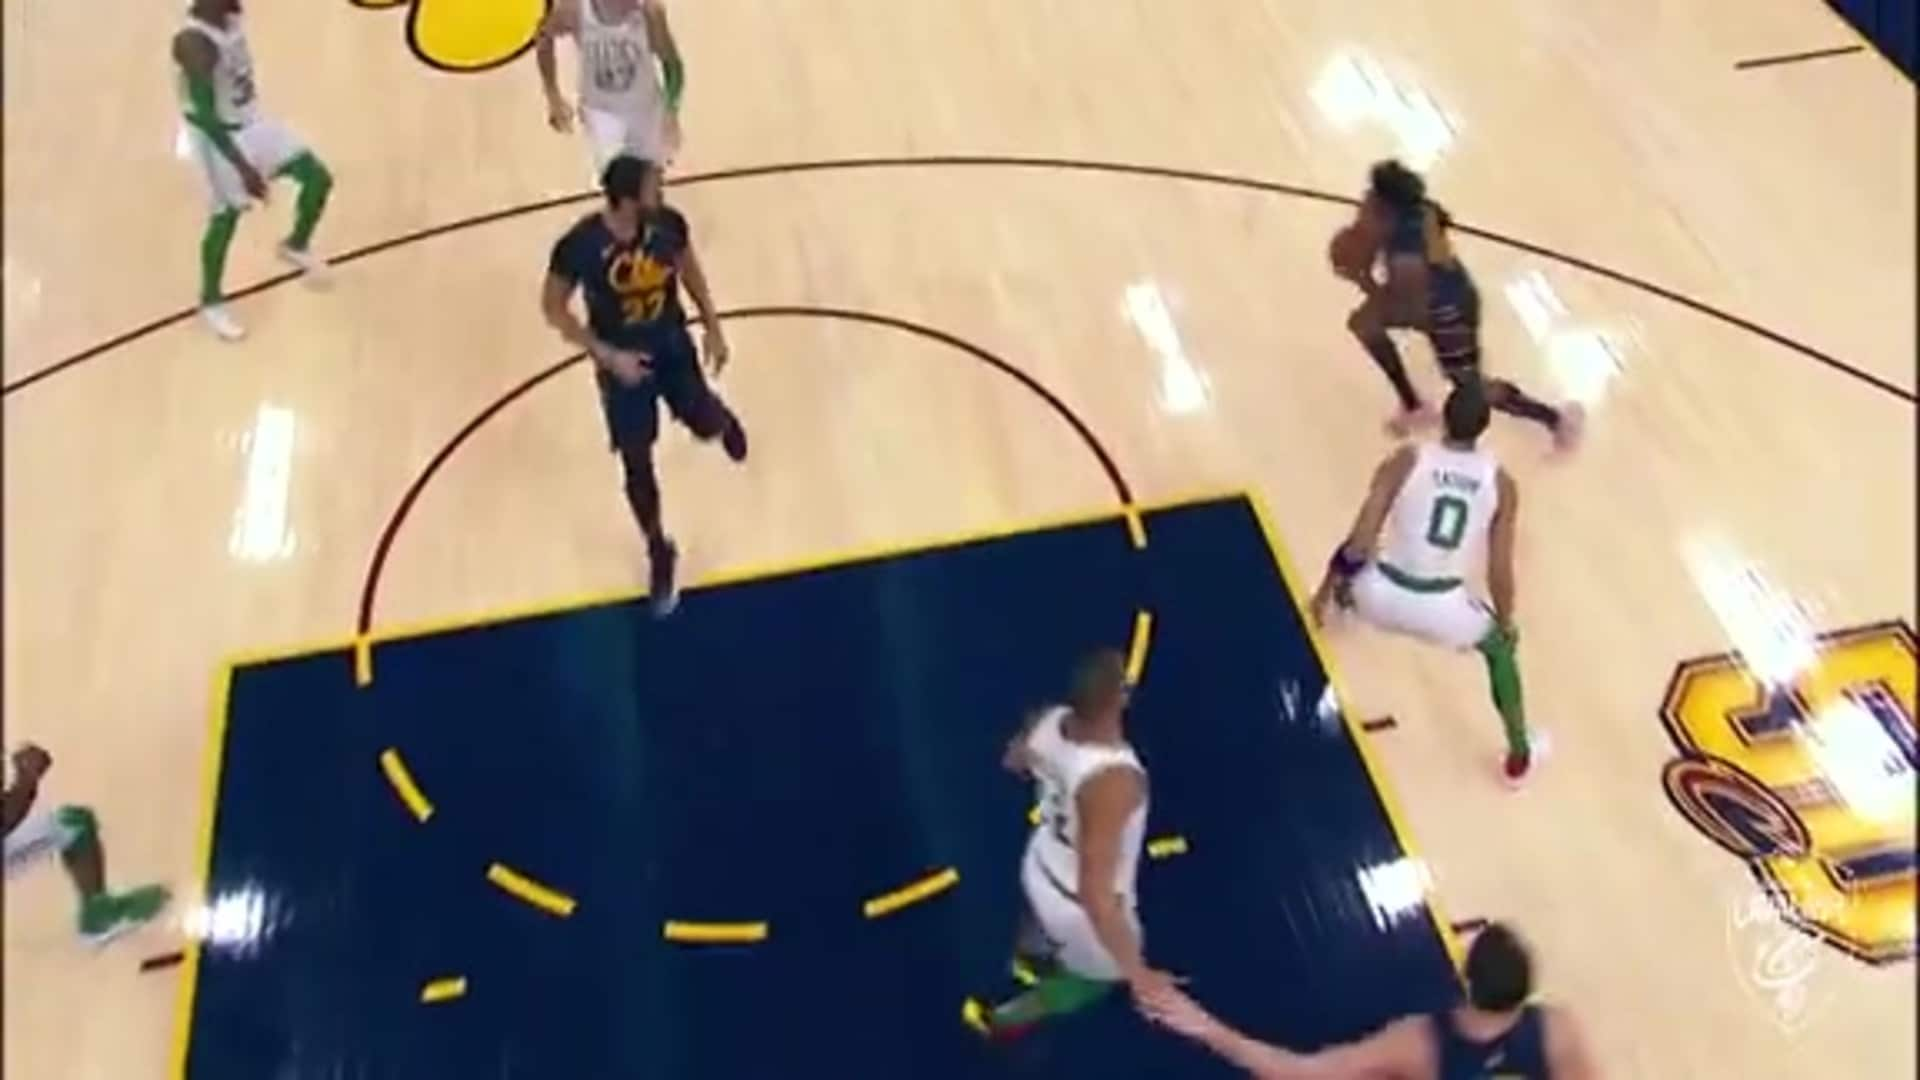 KPJ Threads the Needle with Great Pass